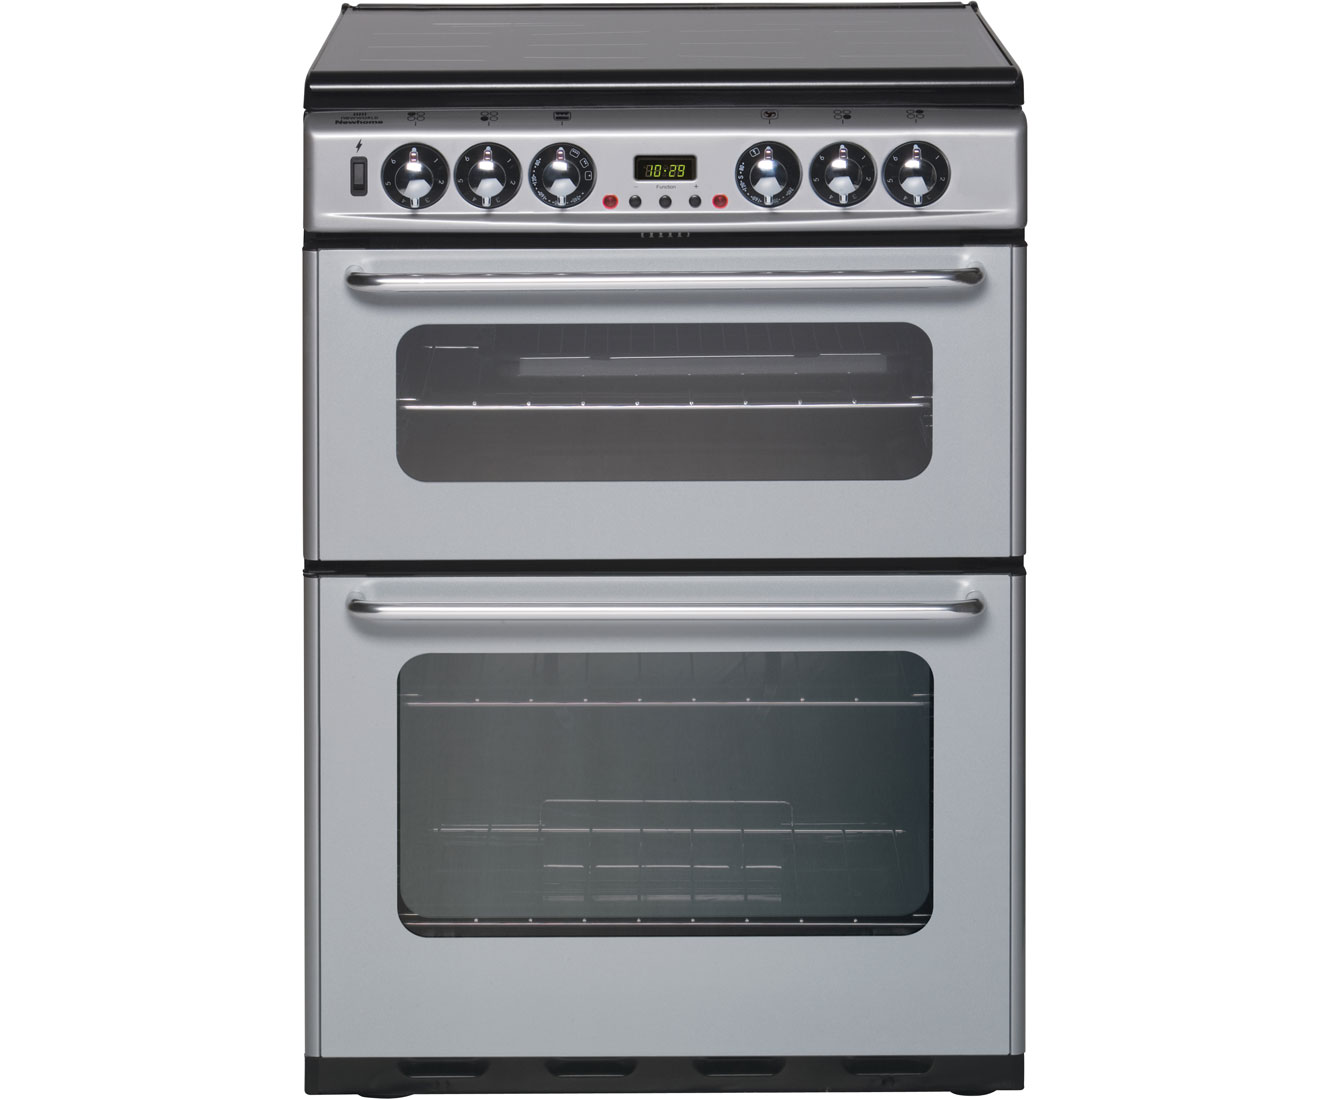 Newworld Newhome DF600TSIDOm Dual Fuel Cooker - Silver